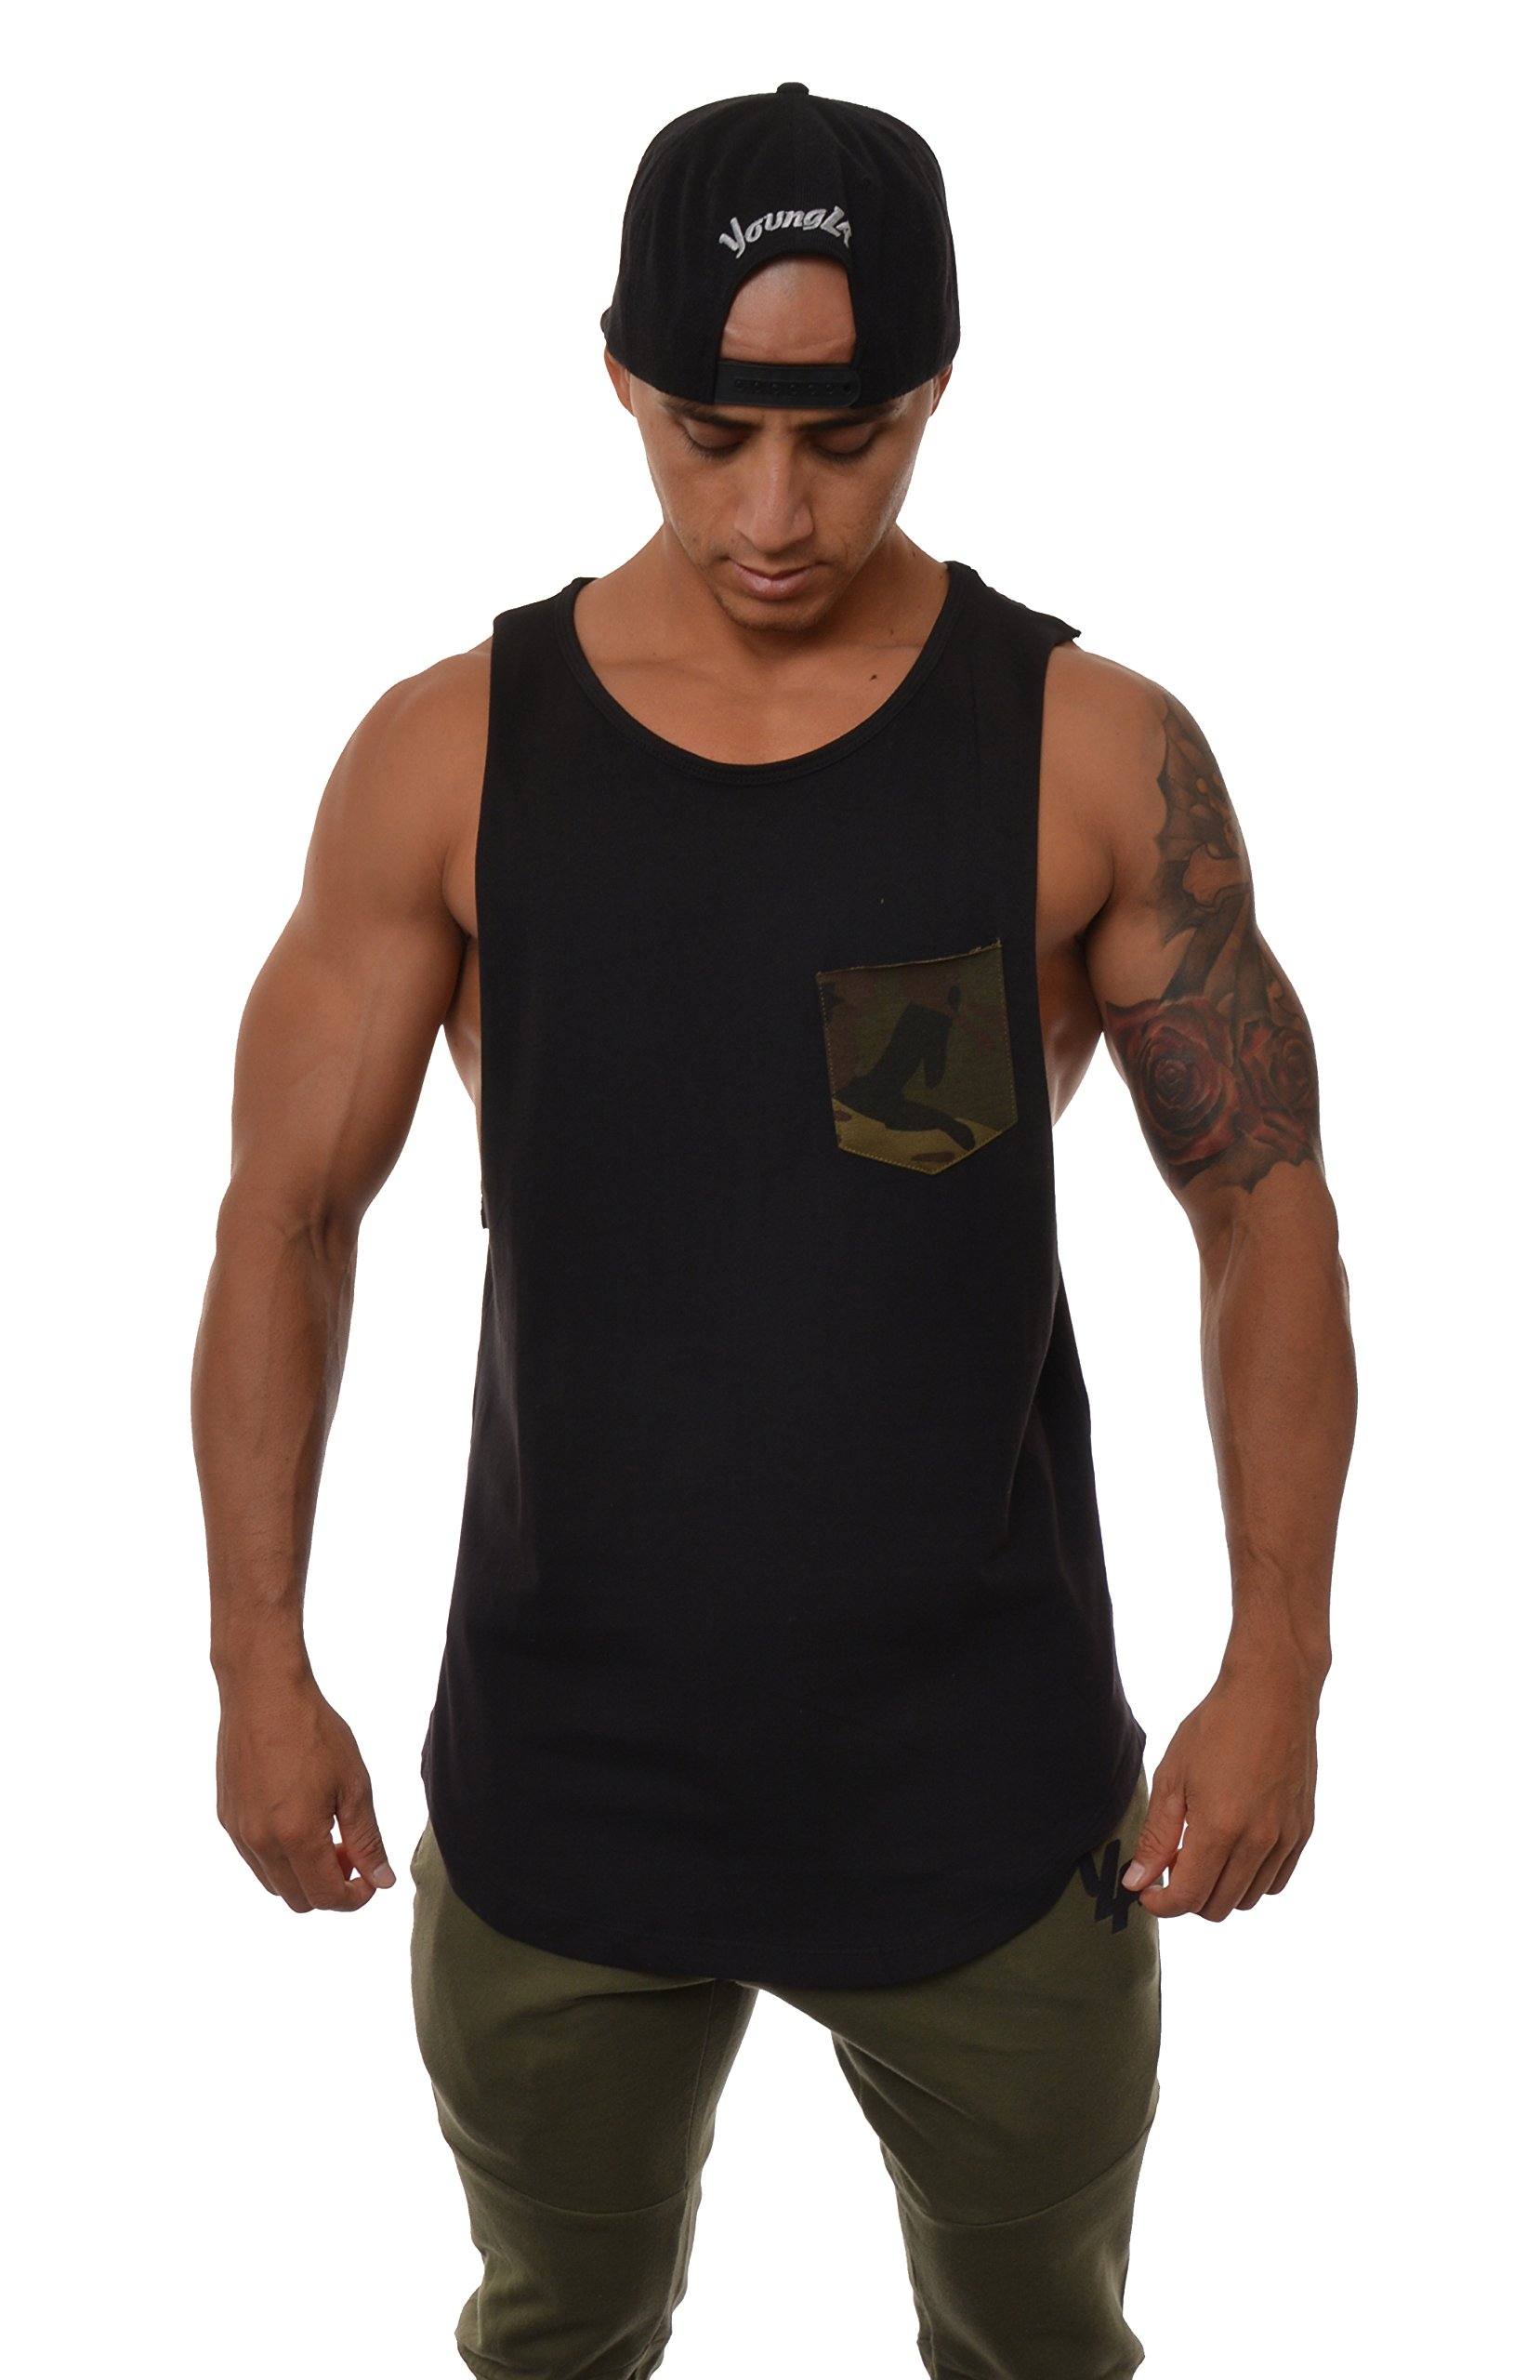 YoungLA Long Tank Tops for Men Muscle Shirt Bodybuilding Gym Athletic Training Sports Everyday Wear 306 Black w/Camo Pocket Small